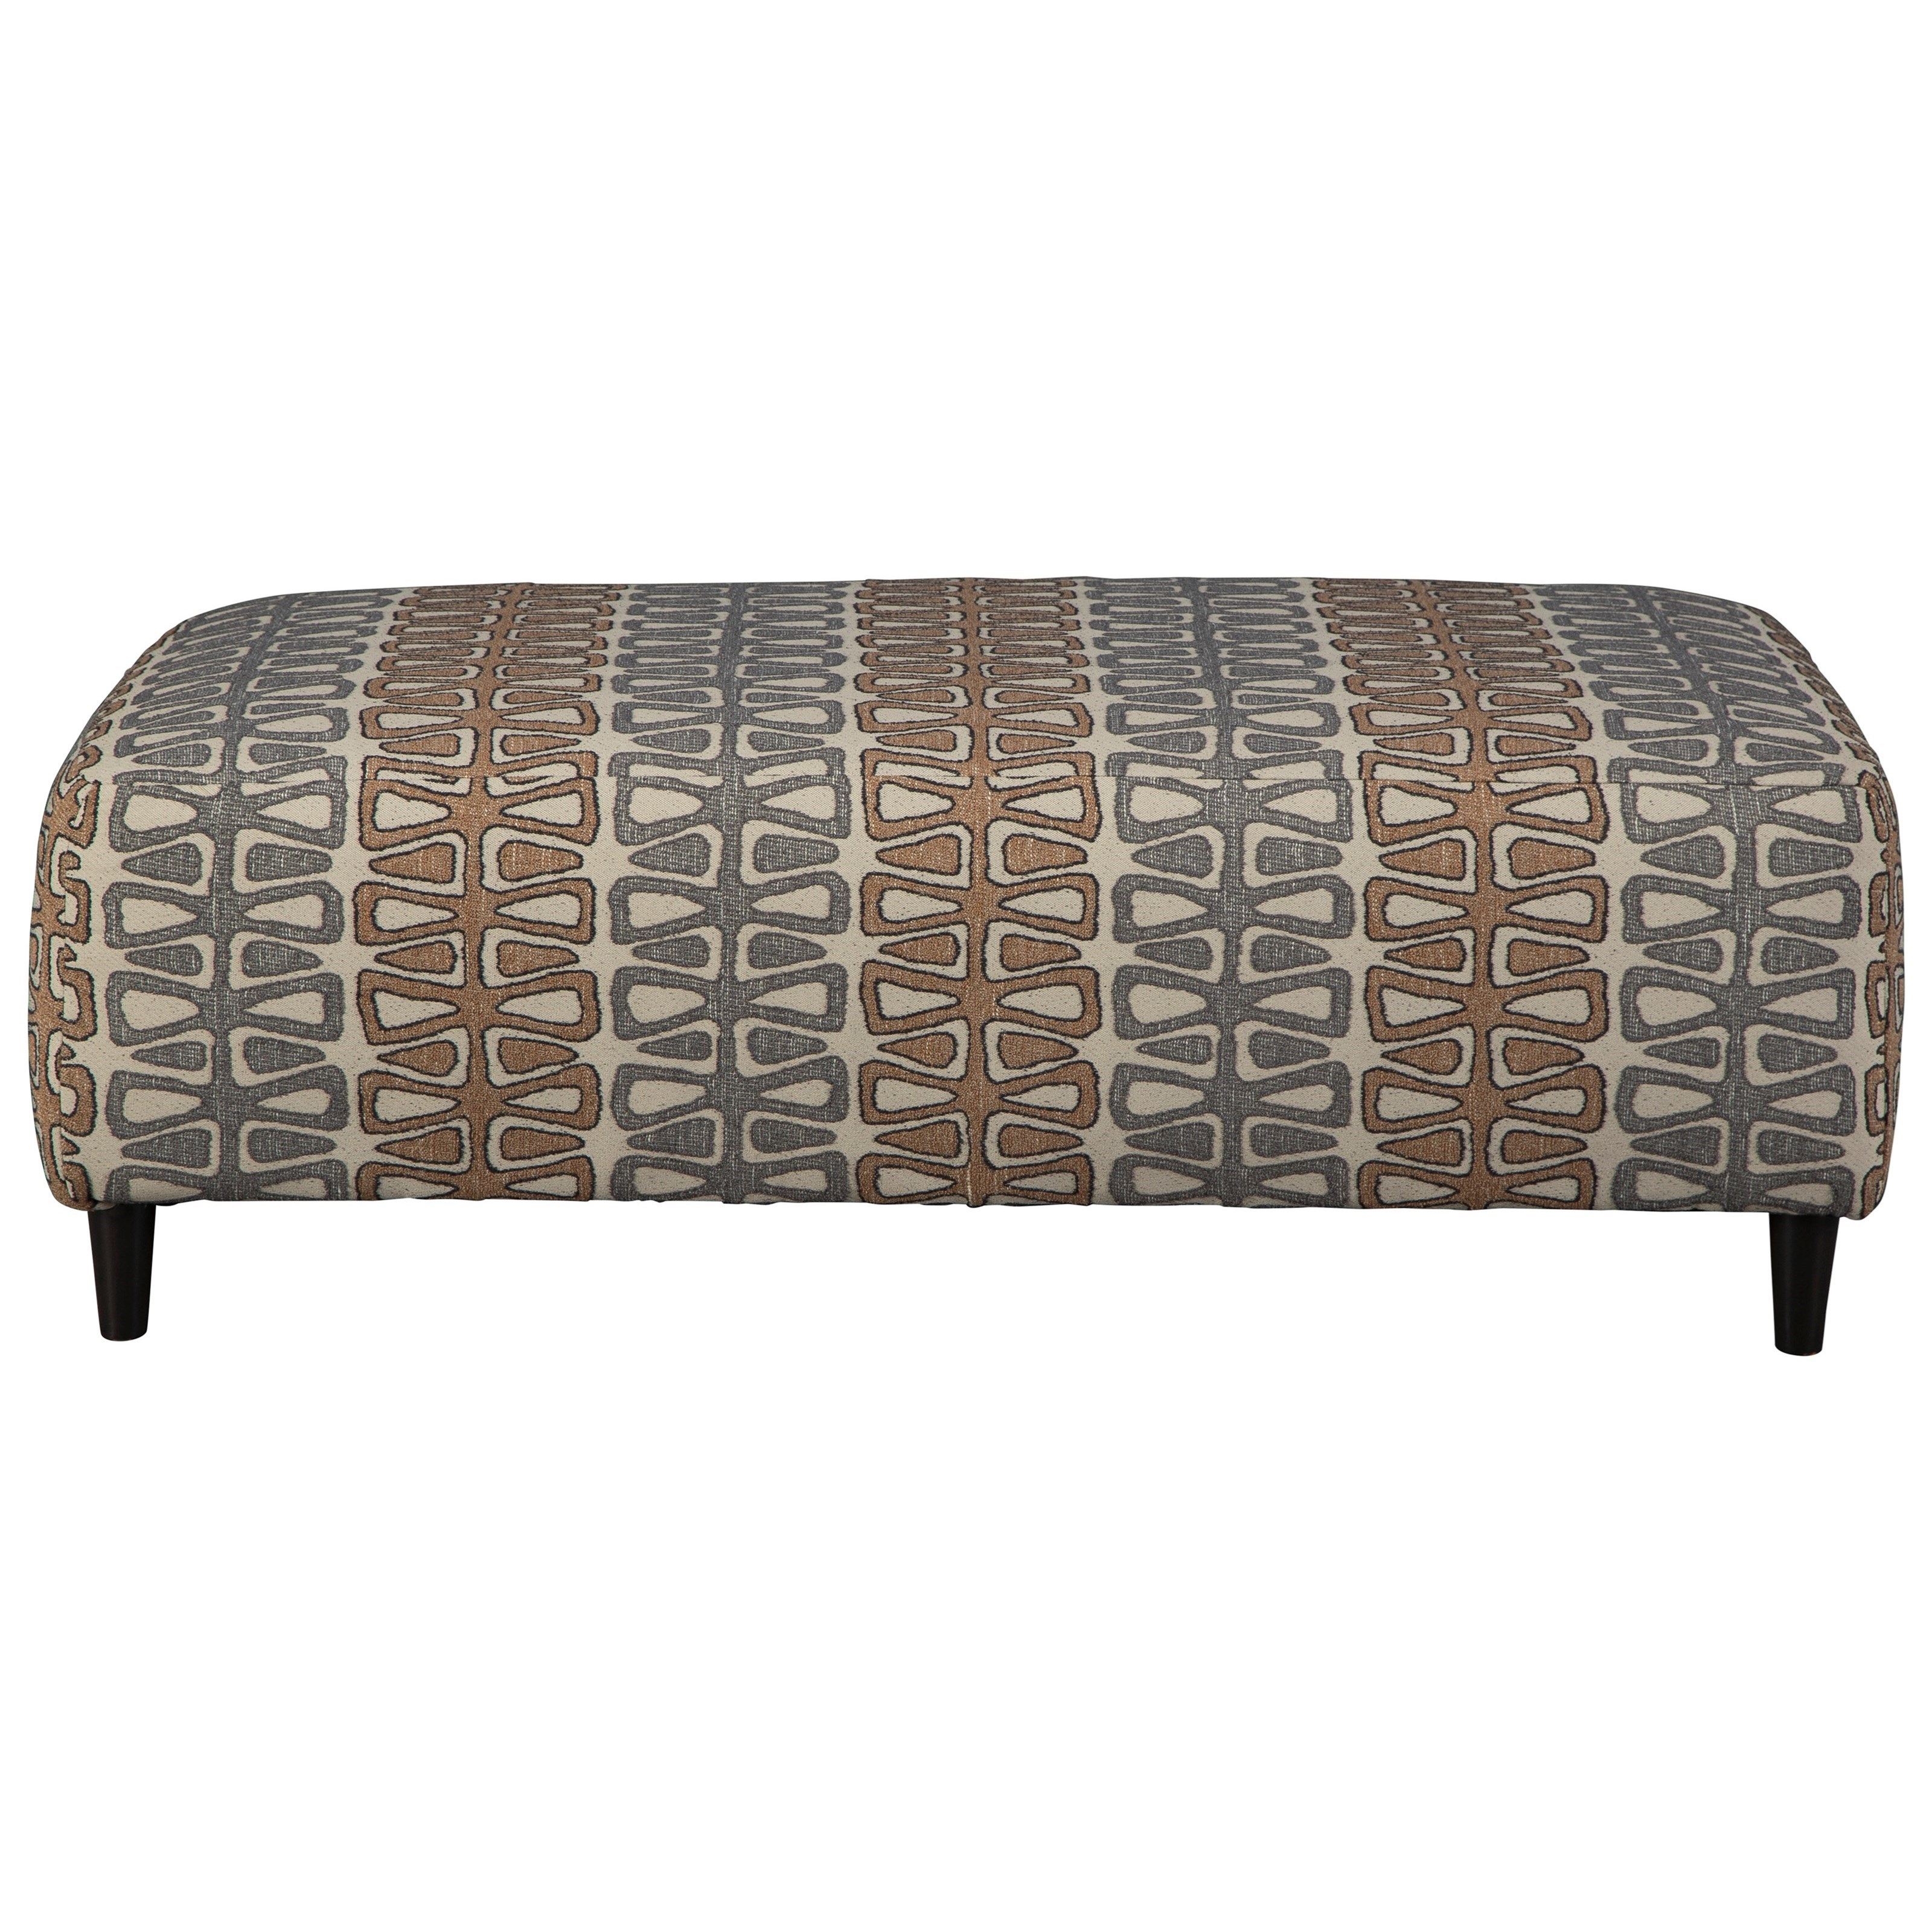 Flintshire Oversized Accent Ottoman by Ashley (Signature Design) at Johnny Janosik